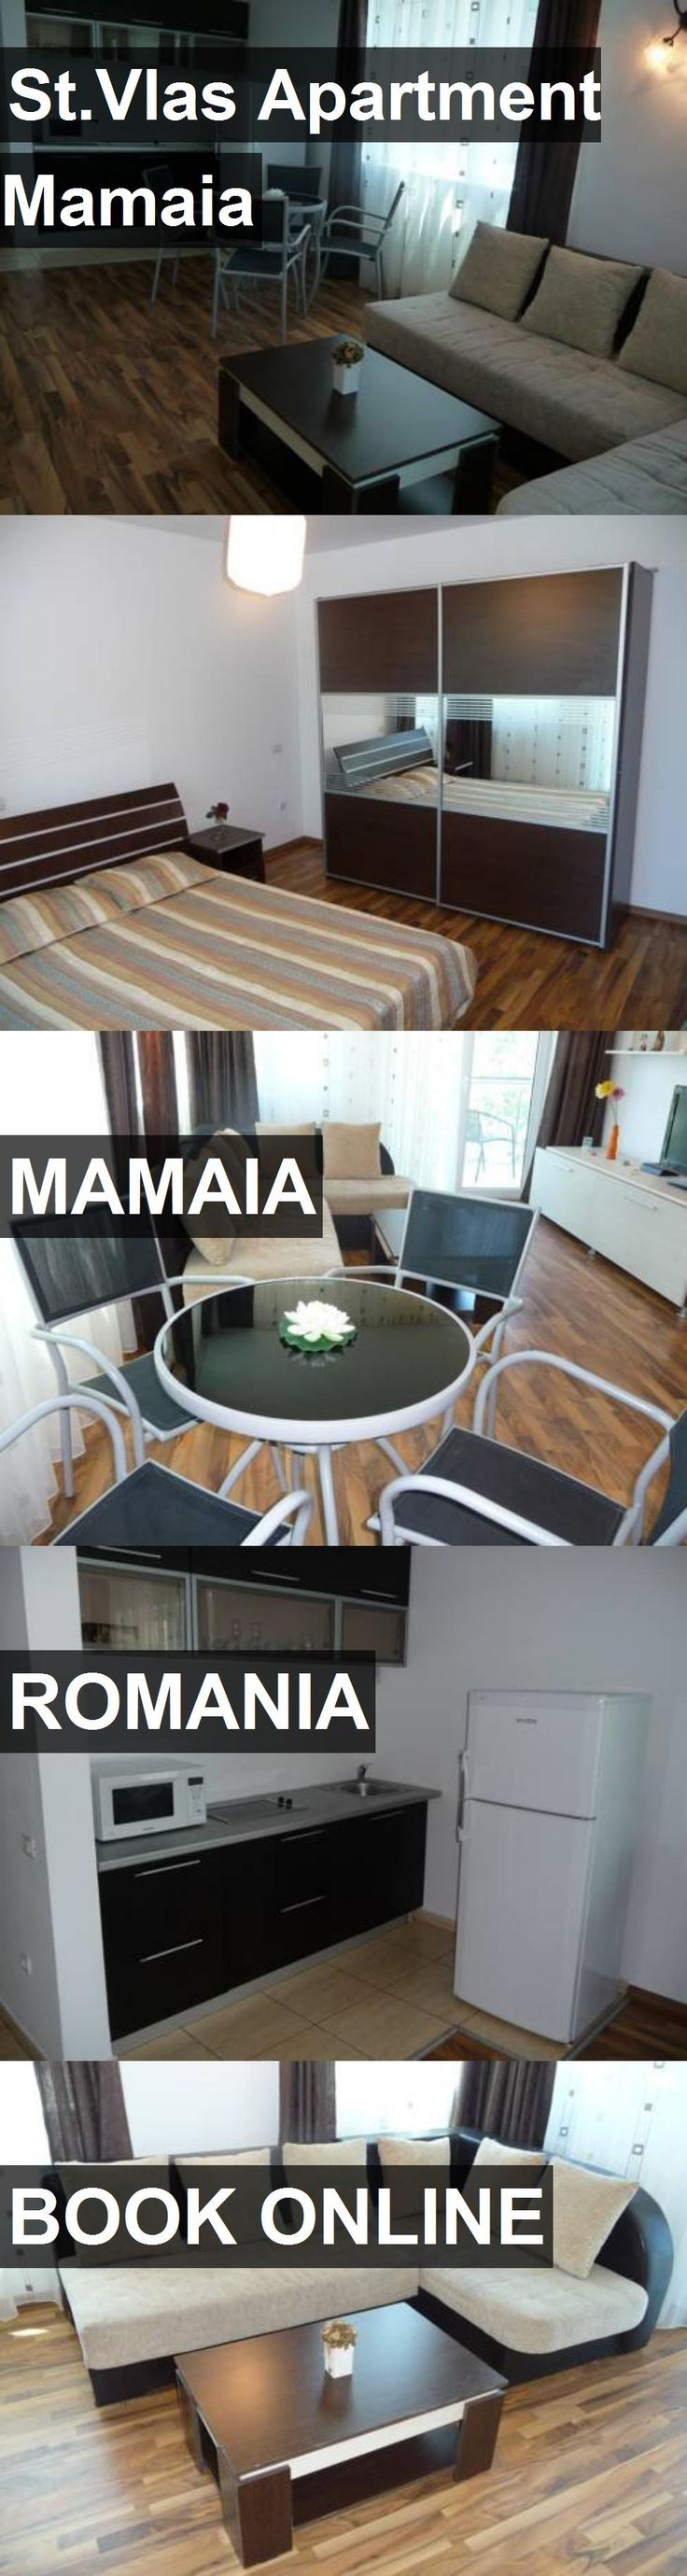 St.Vlas Apartment Mamaia in Mamaia, Romania. For more information, photos, reviews and best prices please follow the link. #Romania #Mamaia #travel #vacation #apartment